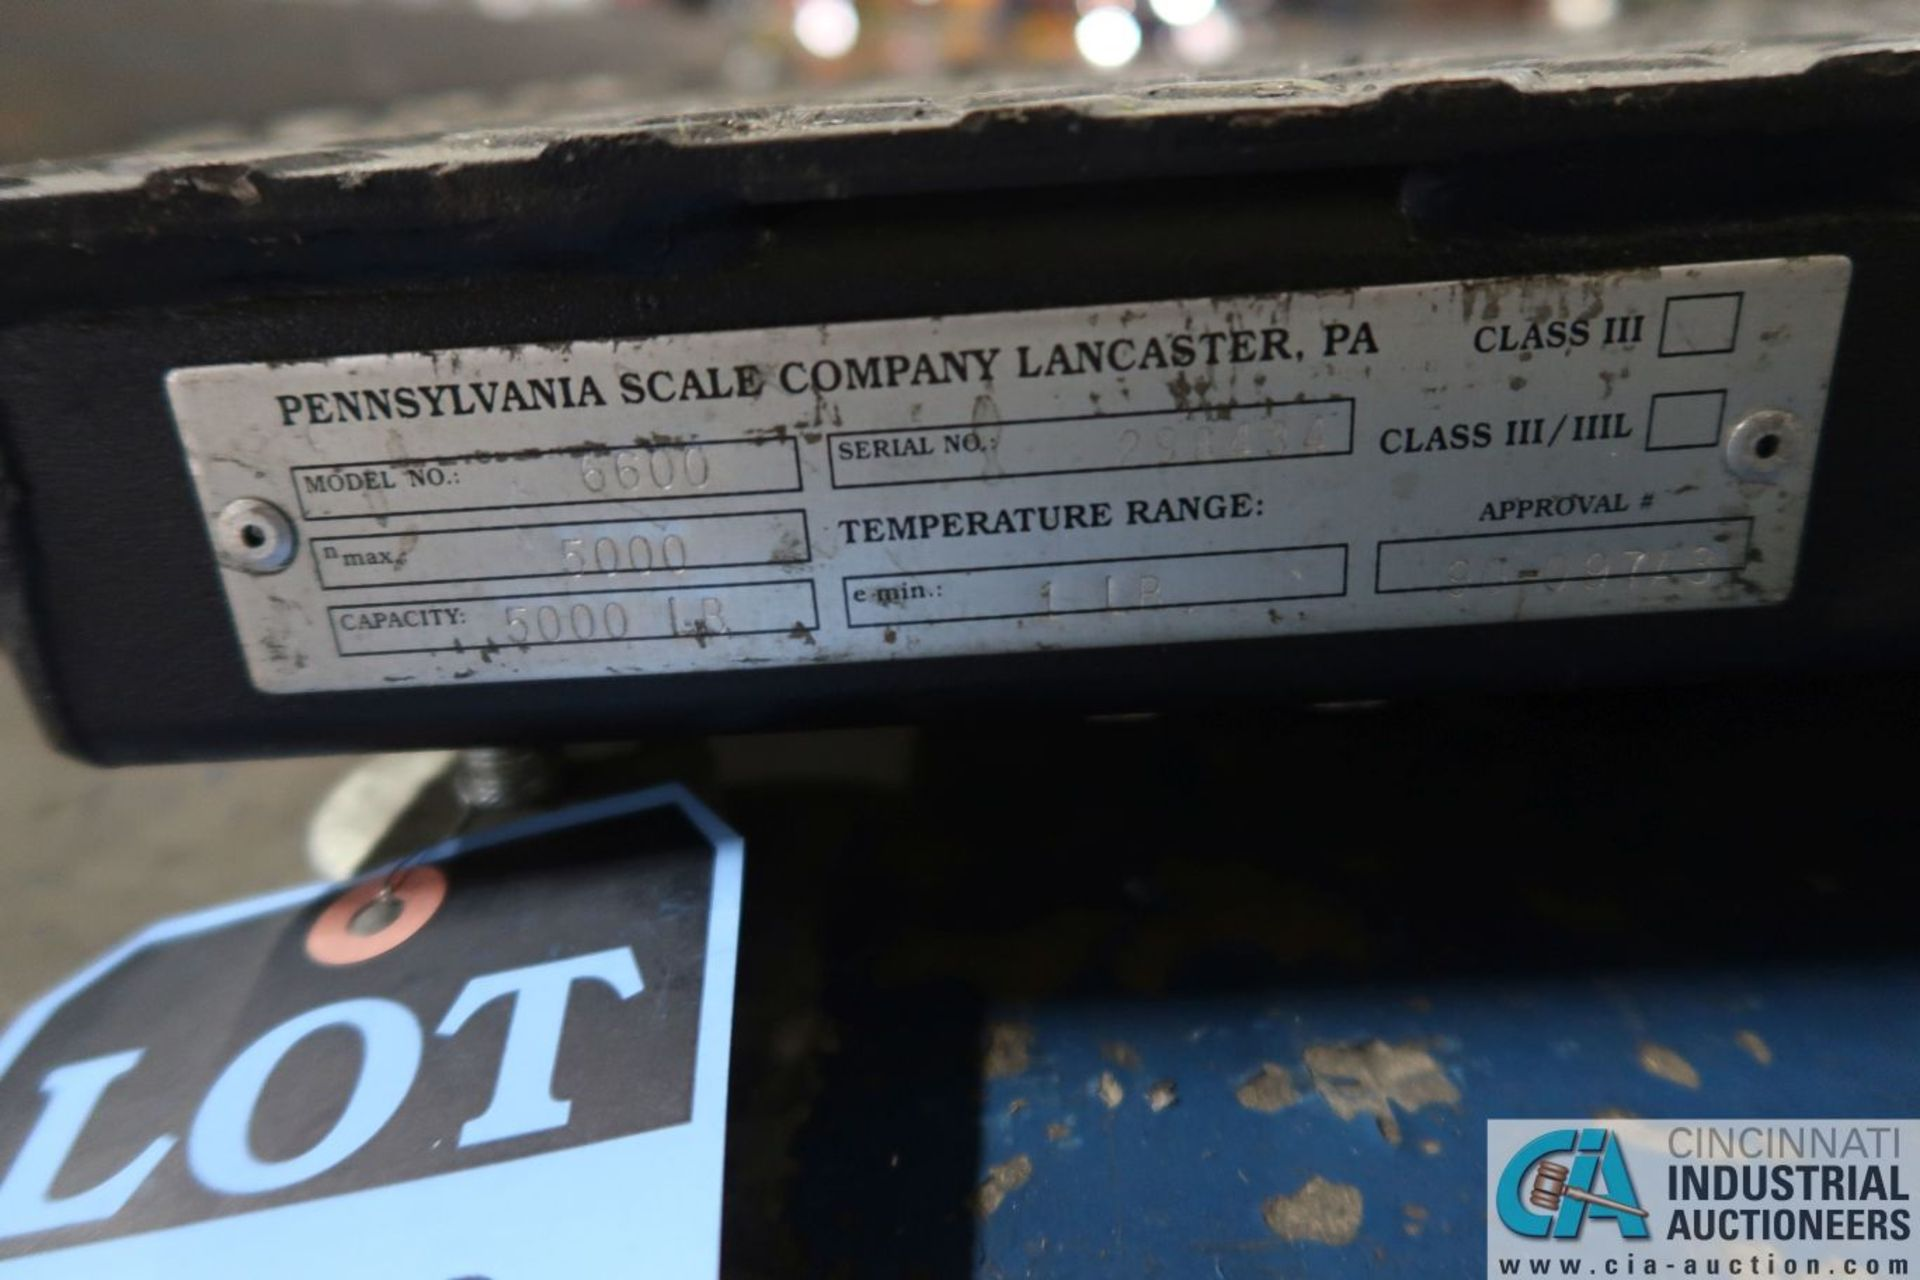 "5,000 LB. CAPACITY PENNSYLVANIA MODEL 16600 36"" X 36"" PLATFORM SCALE WITH PENNSYLVANIA 7600 BENCH - Image 3 of 3"